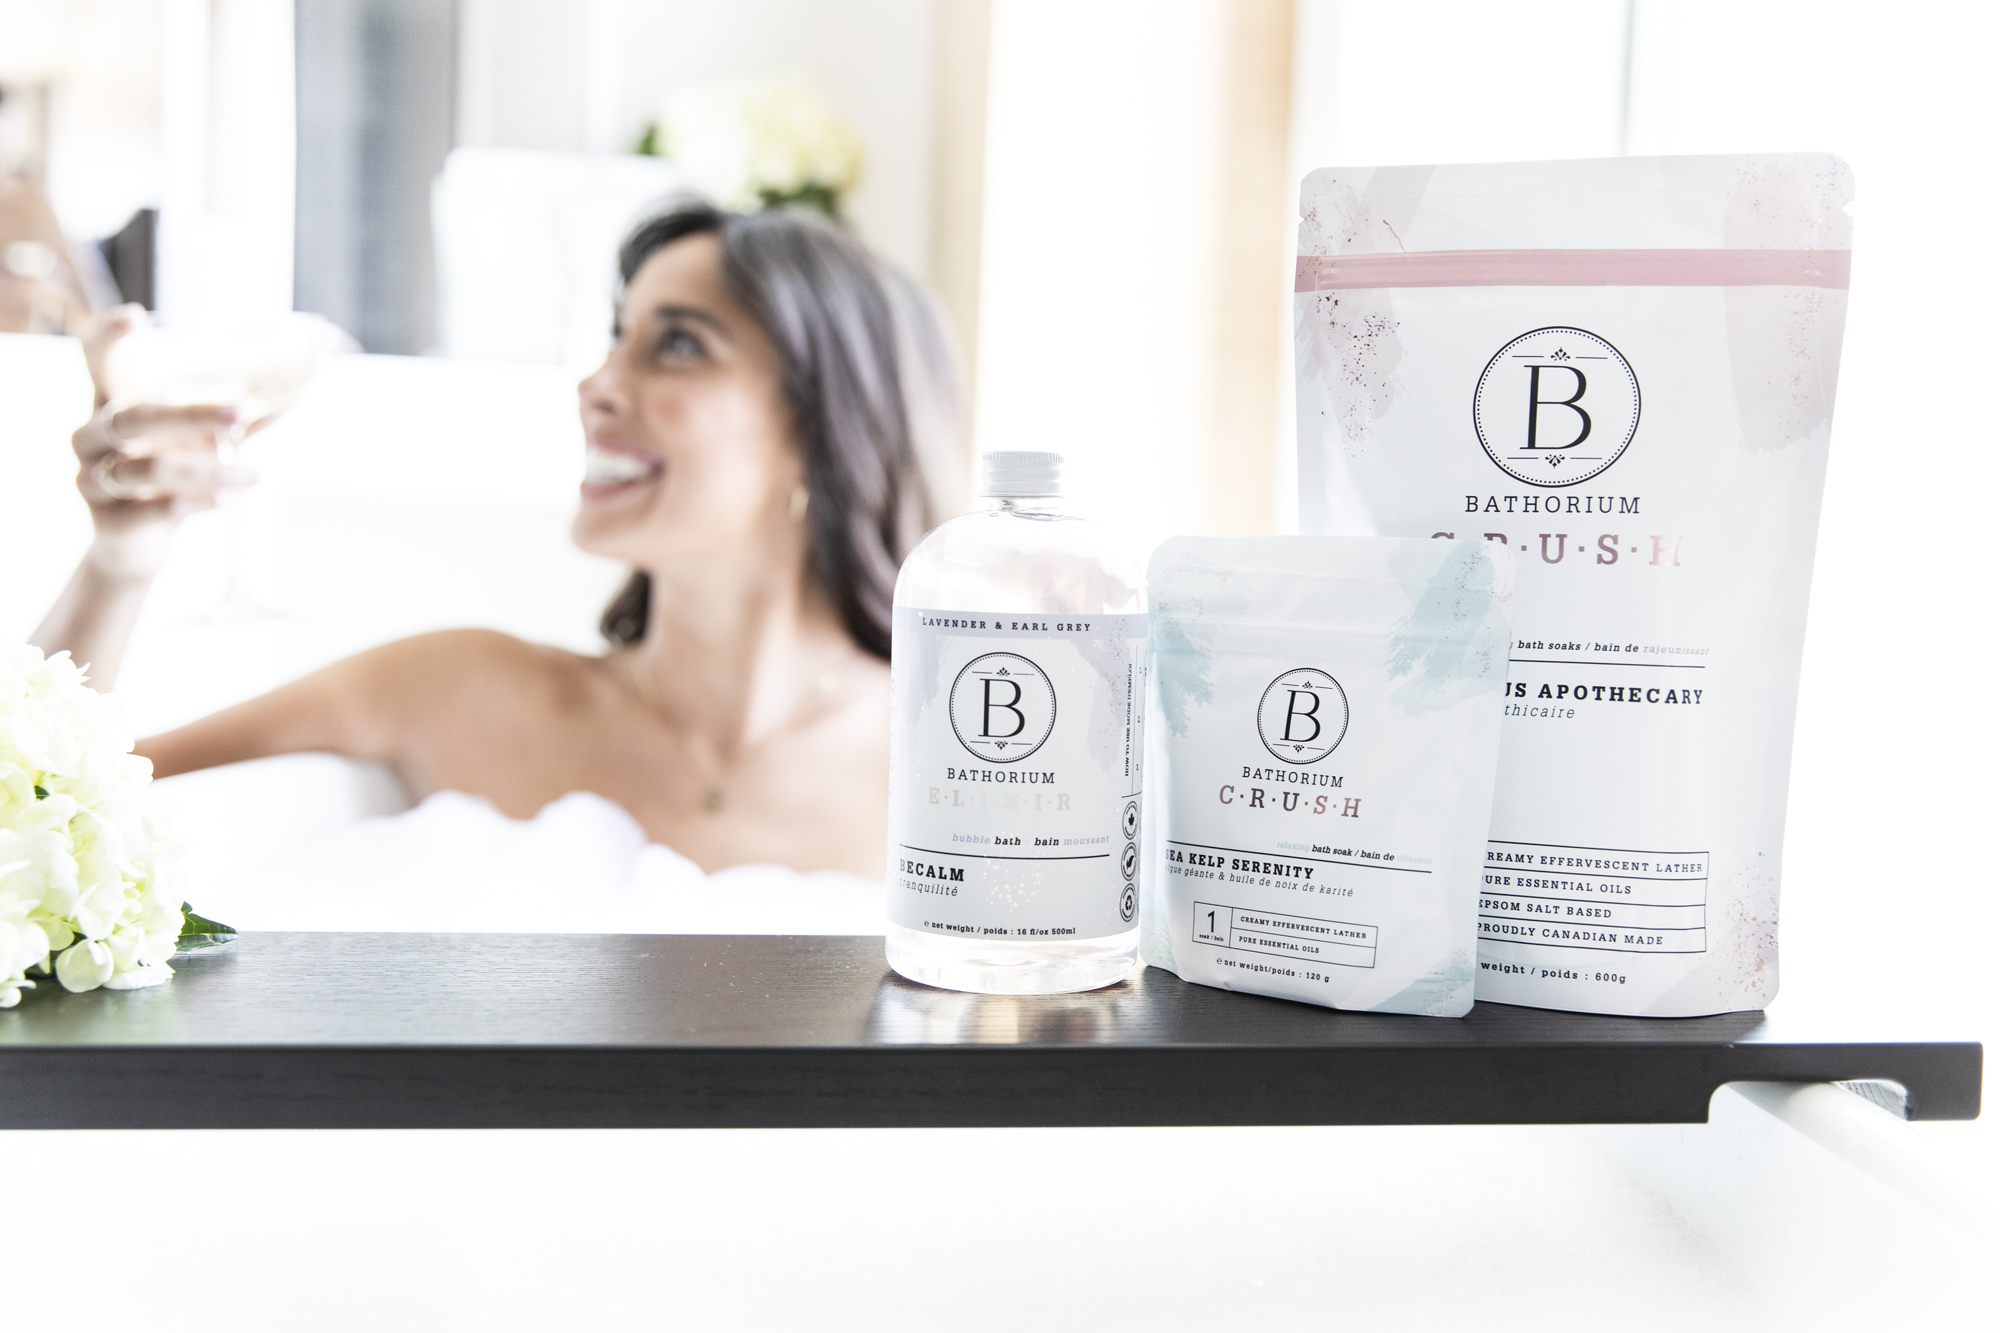 Bathorium Becalm, Sea Kelp Serenity bath soak, and Eucalyptus Apothecary with woman in the background in a tub